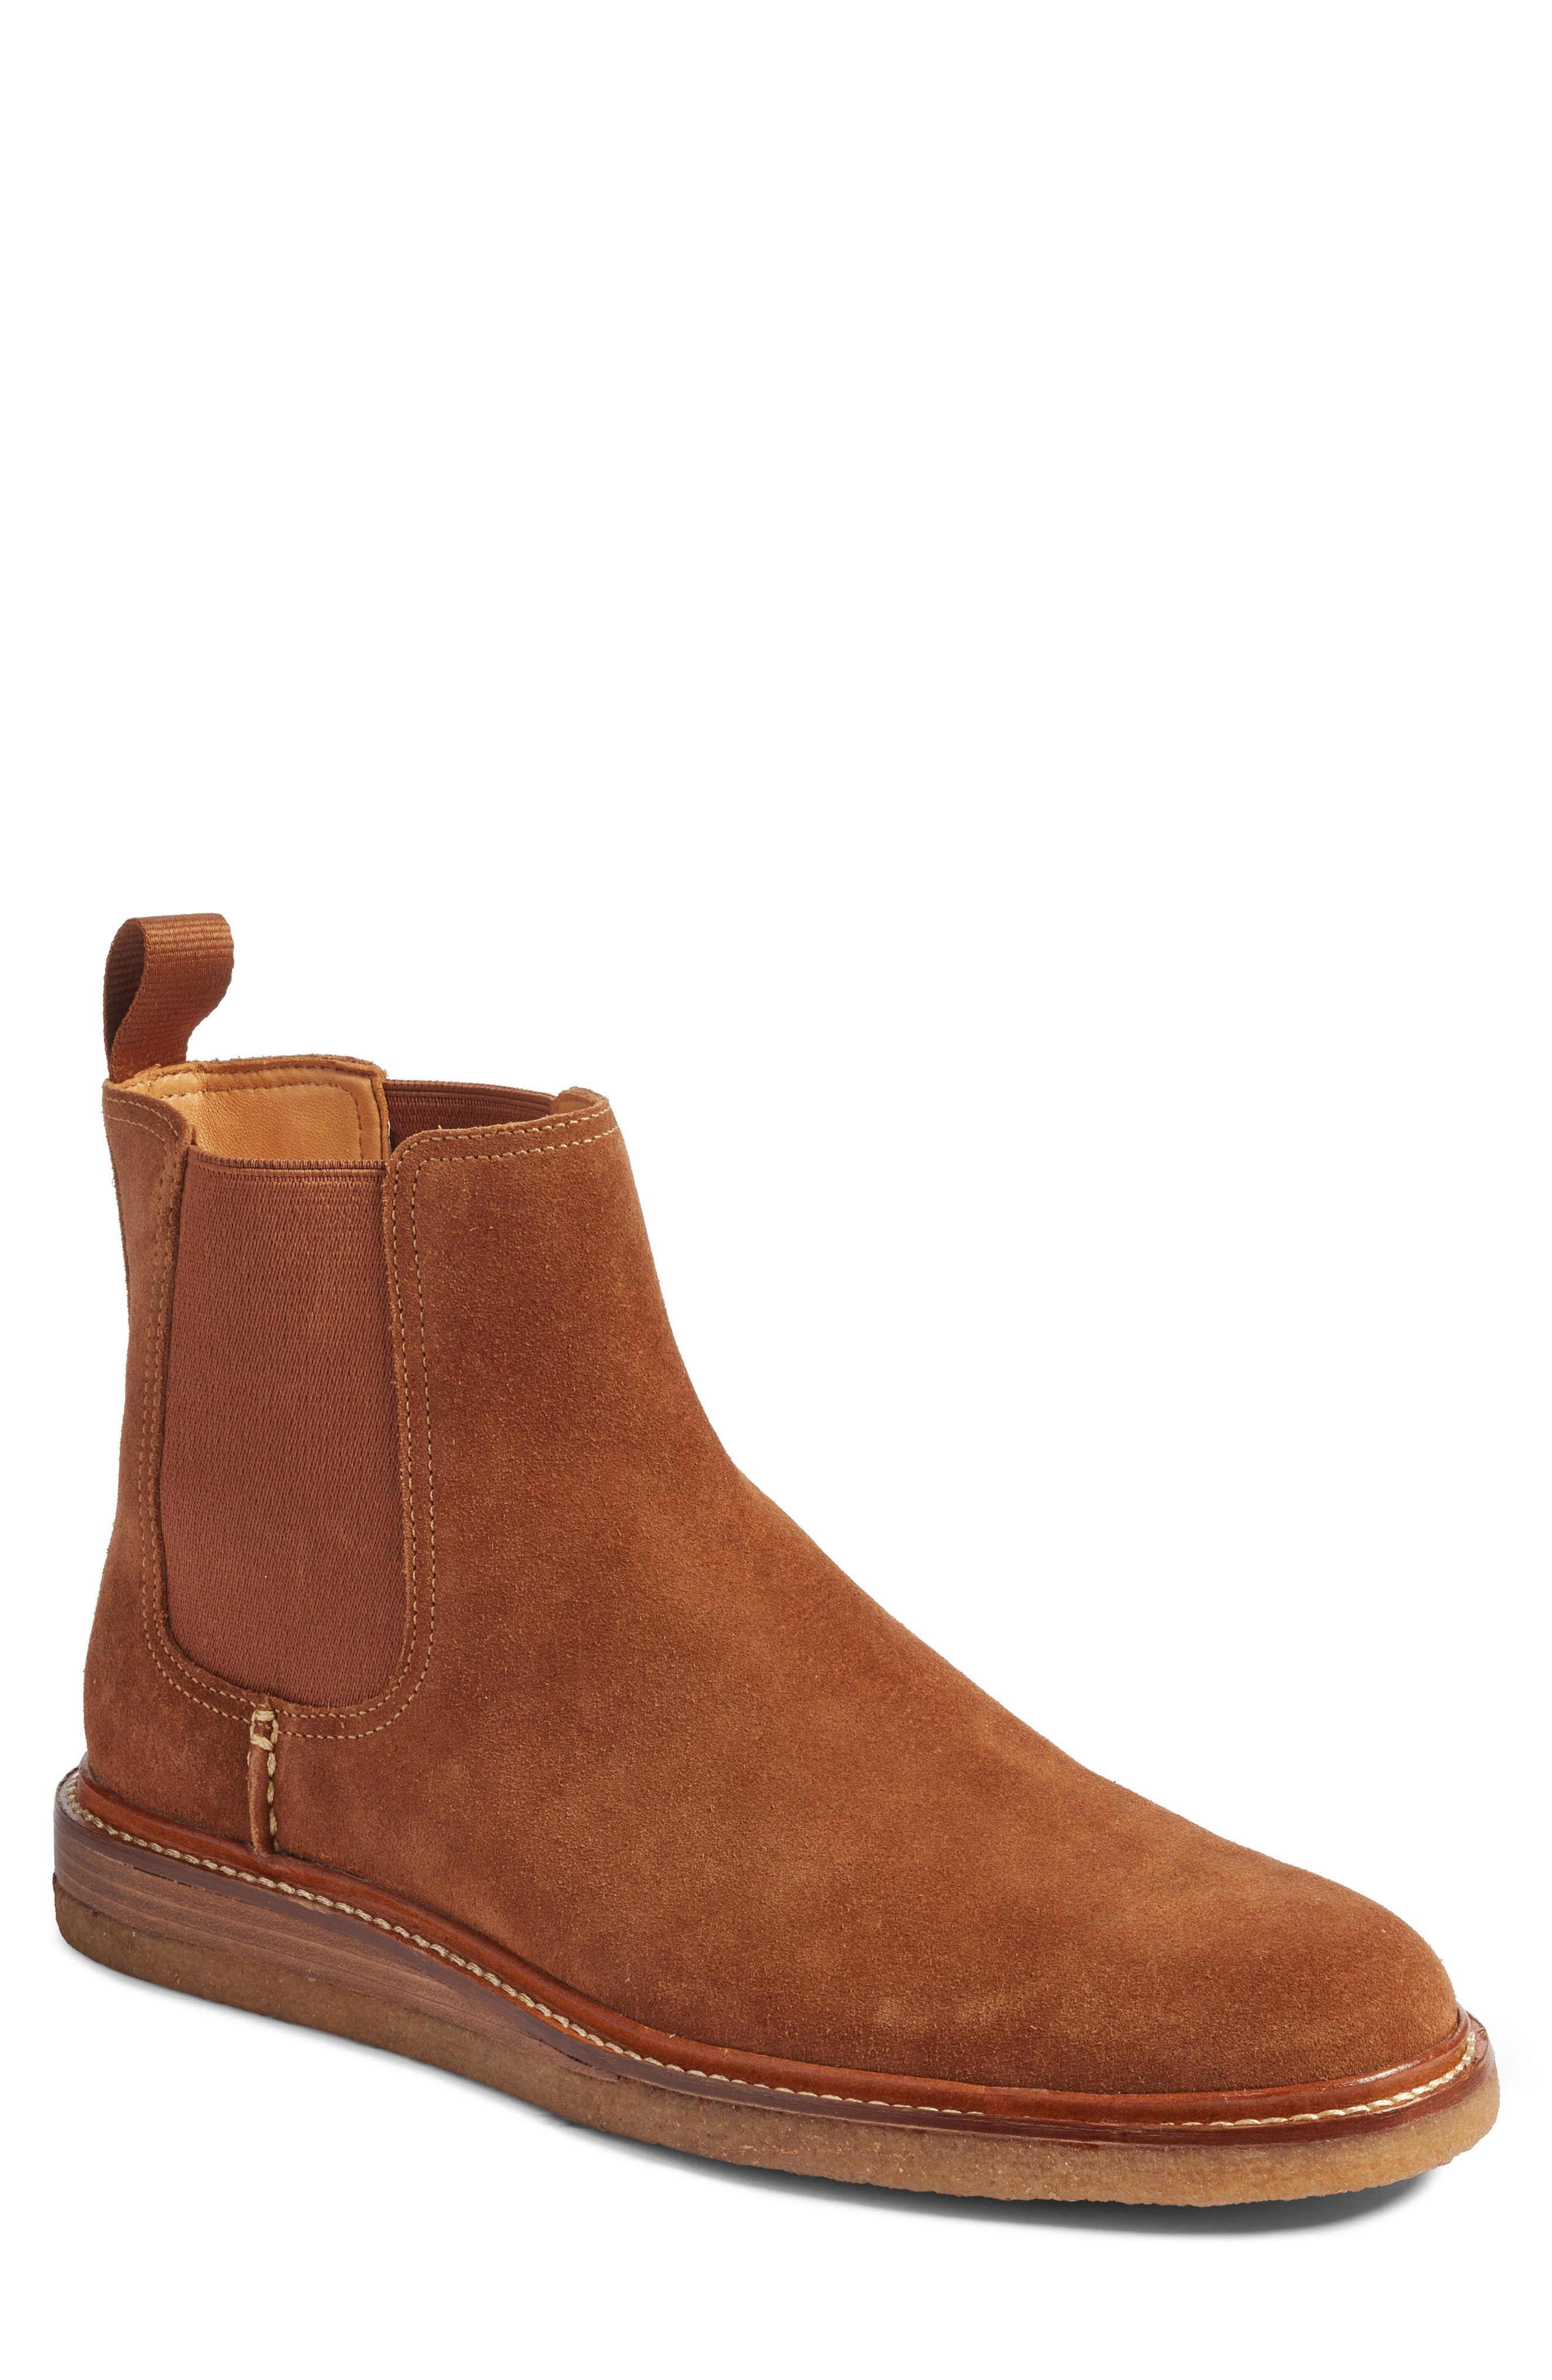 Leather Chelsea Boot,                             Main thumbnail 1, color,                             Dark Snuff Leather